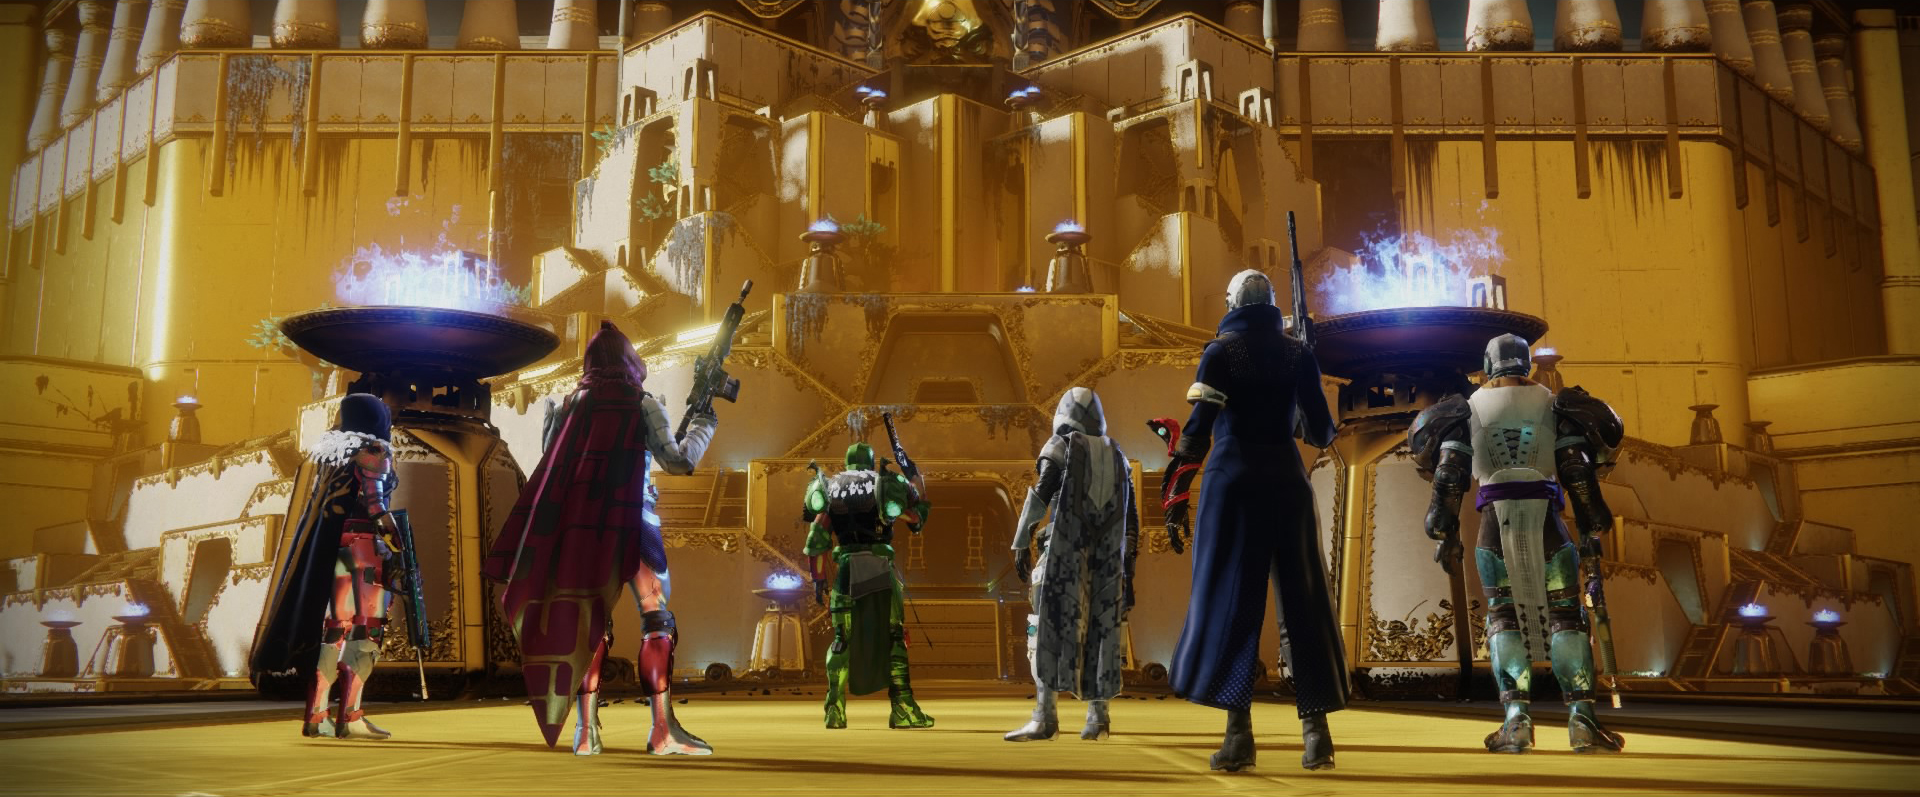 Bungie gets $100M from Chinese gaming company to grow to 'multi-franchise' studio